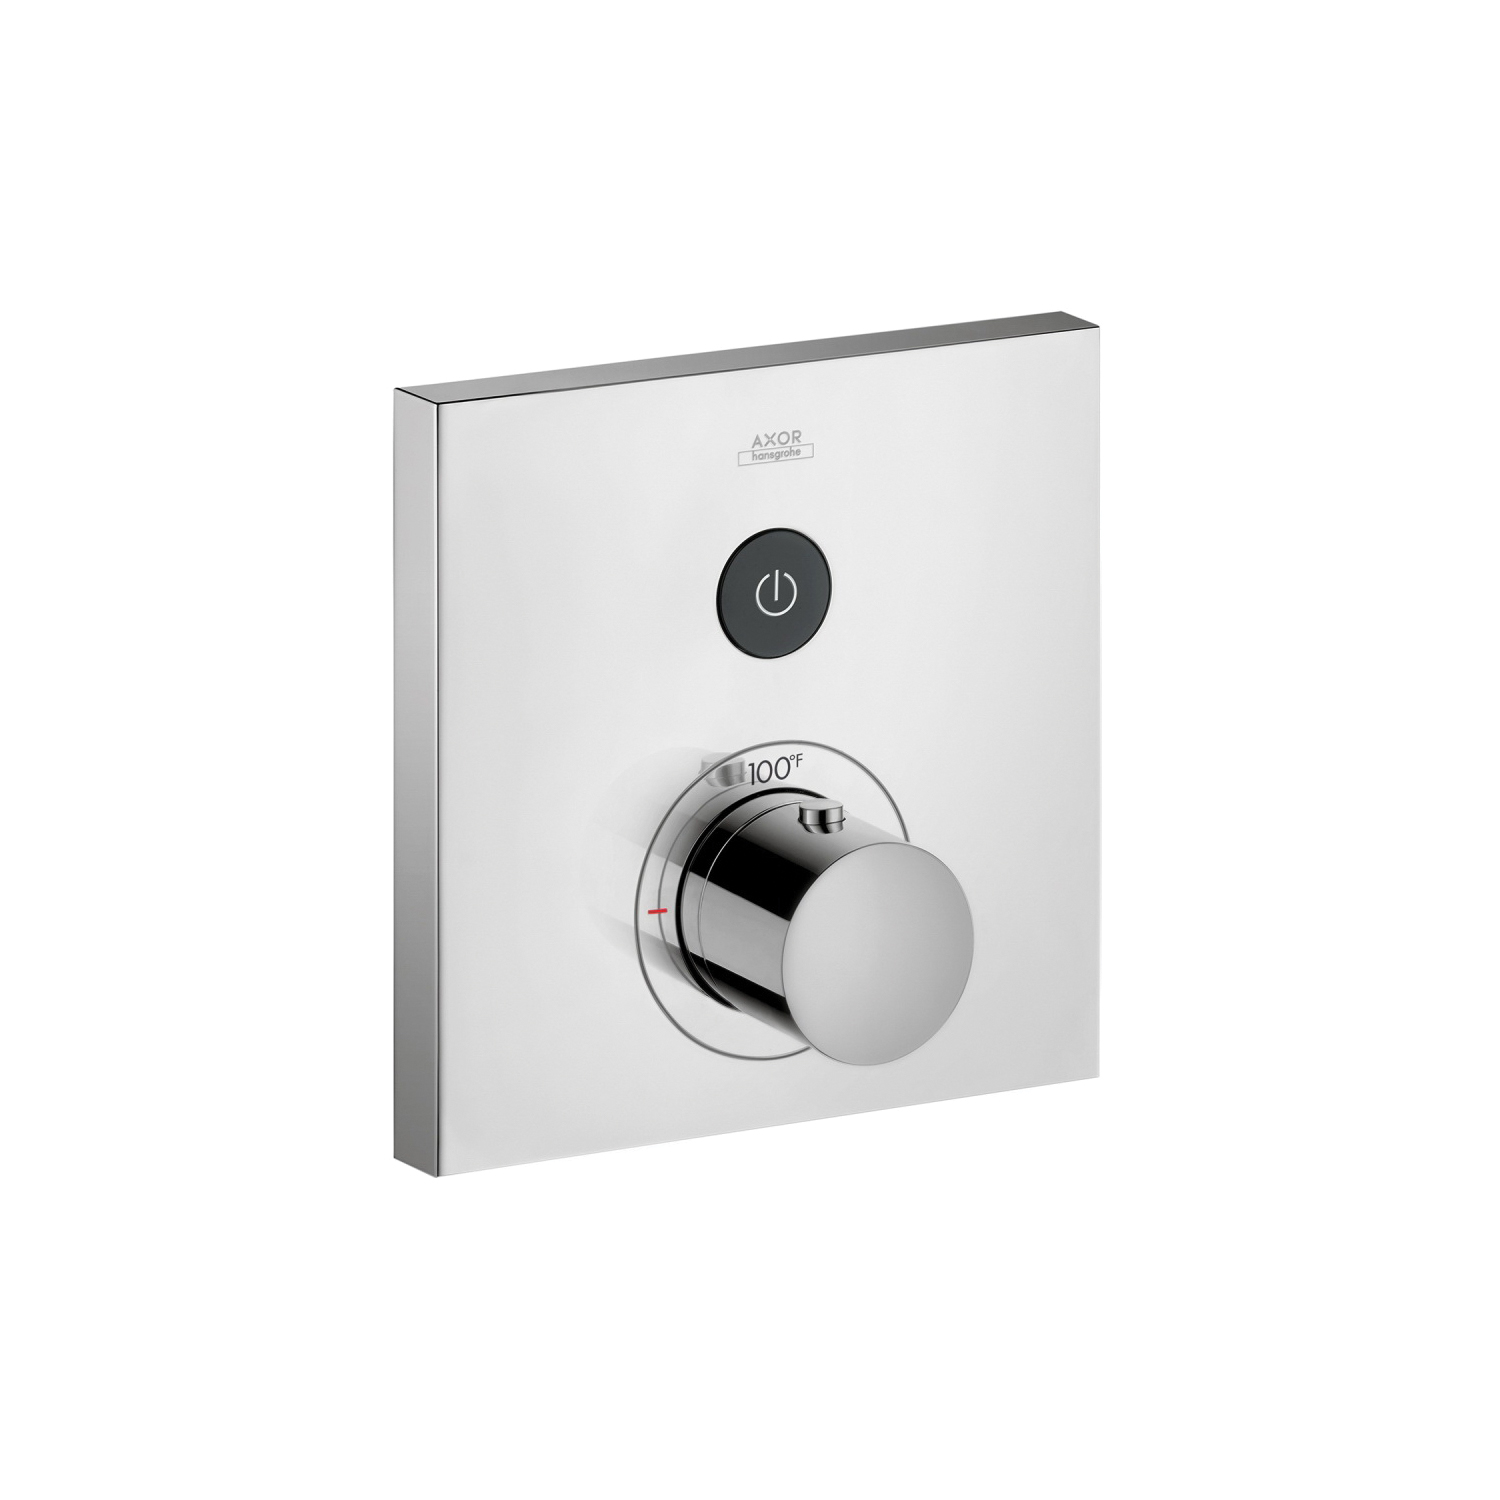 Hansgrohe 36714001 Axor ShowerSelect Square Thermostatic Trim, Hand Shower Yes/No: No, Chrome Plated